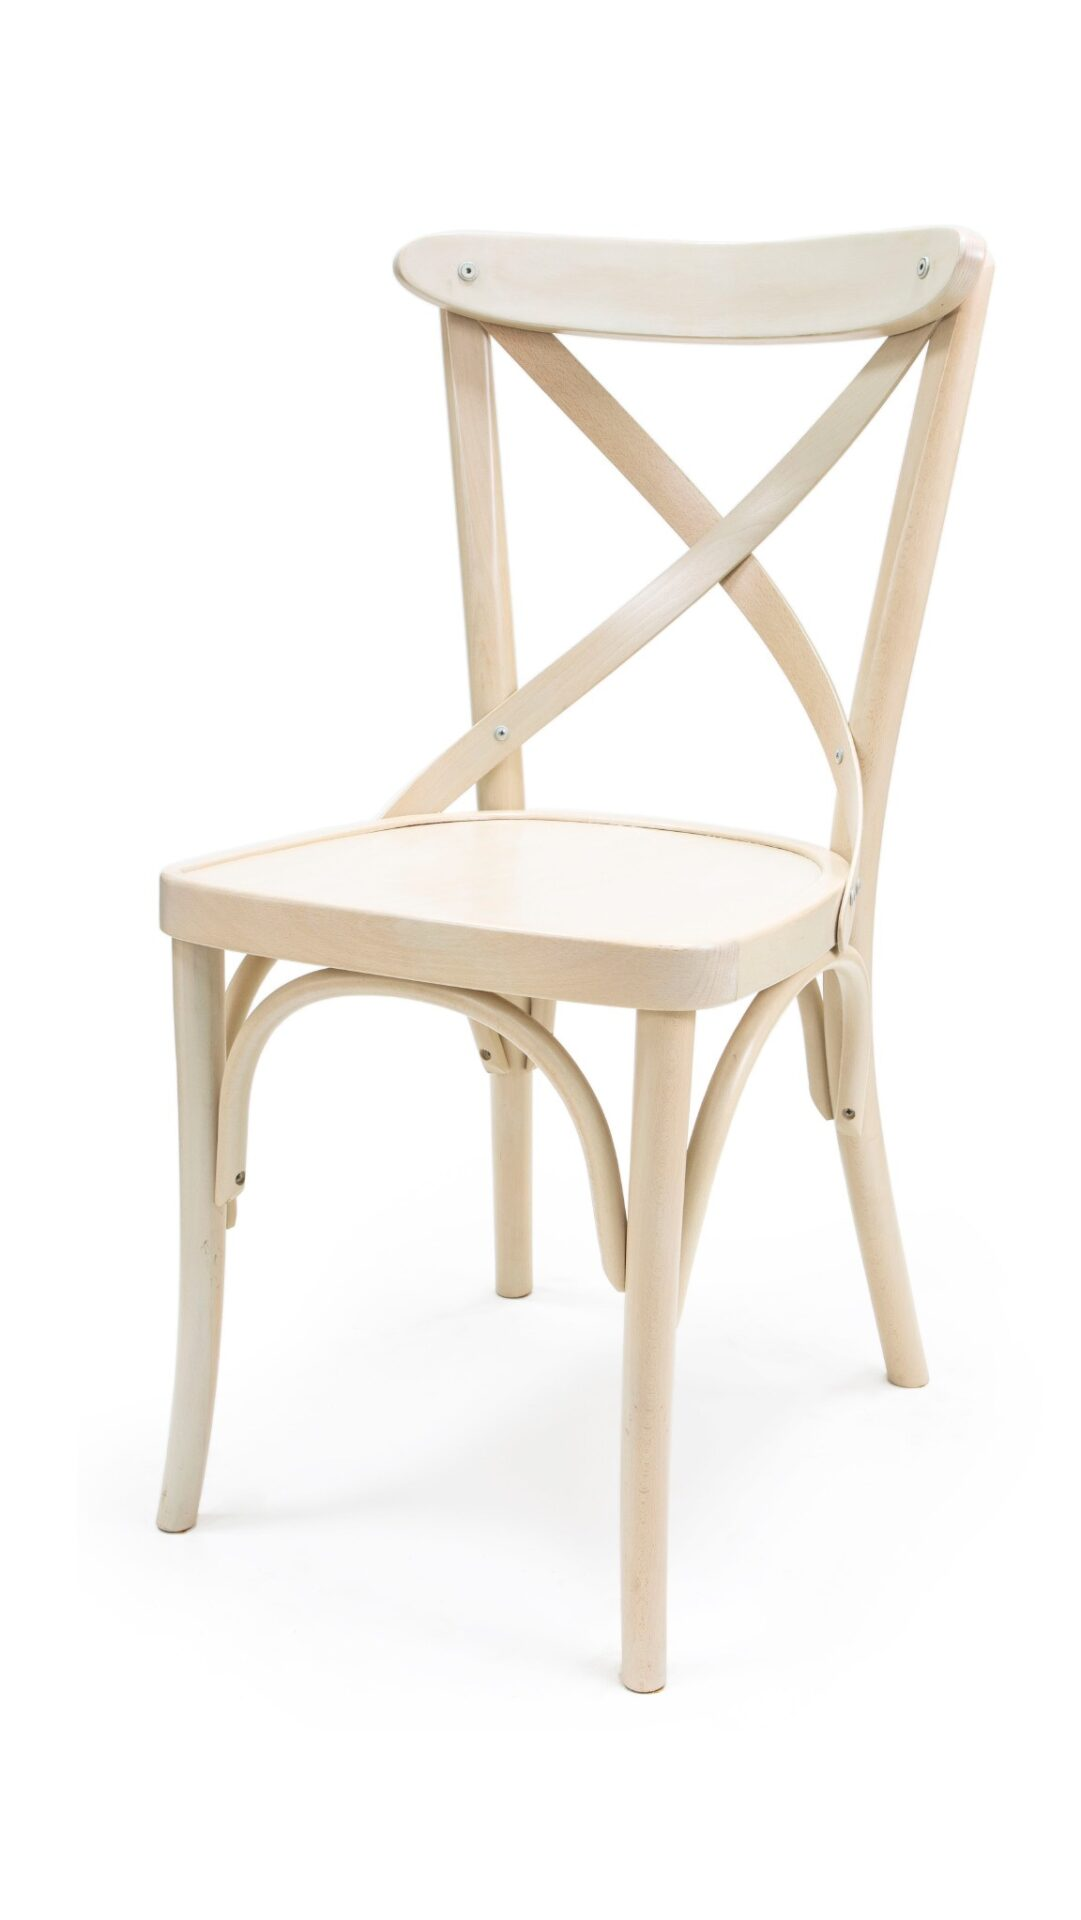 Solid Wood Chair made of Beech - 1327S, SP